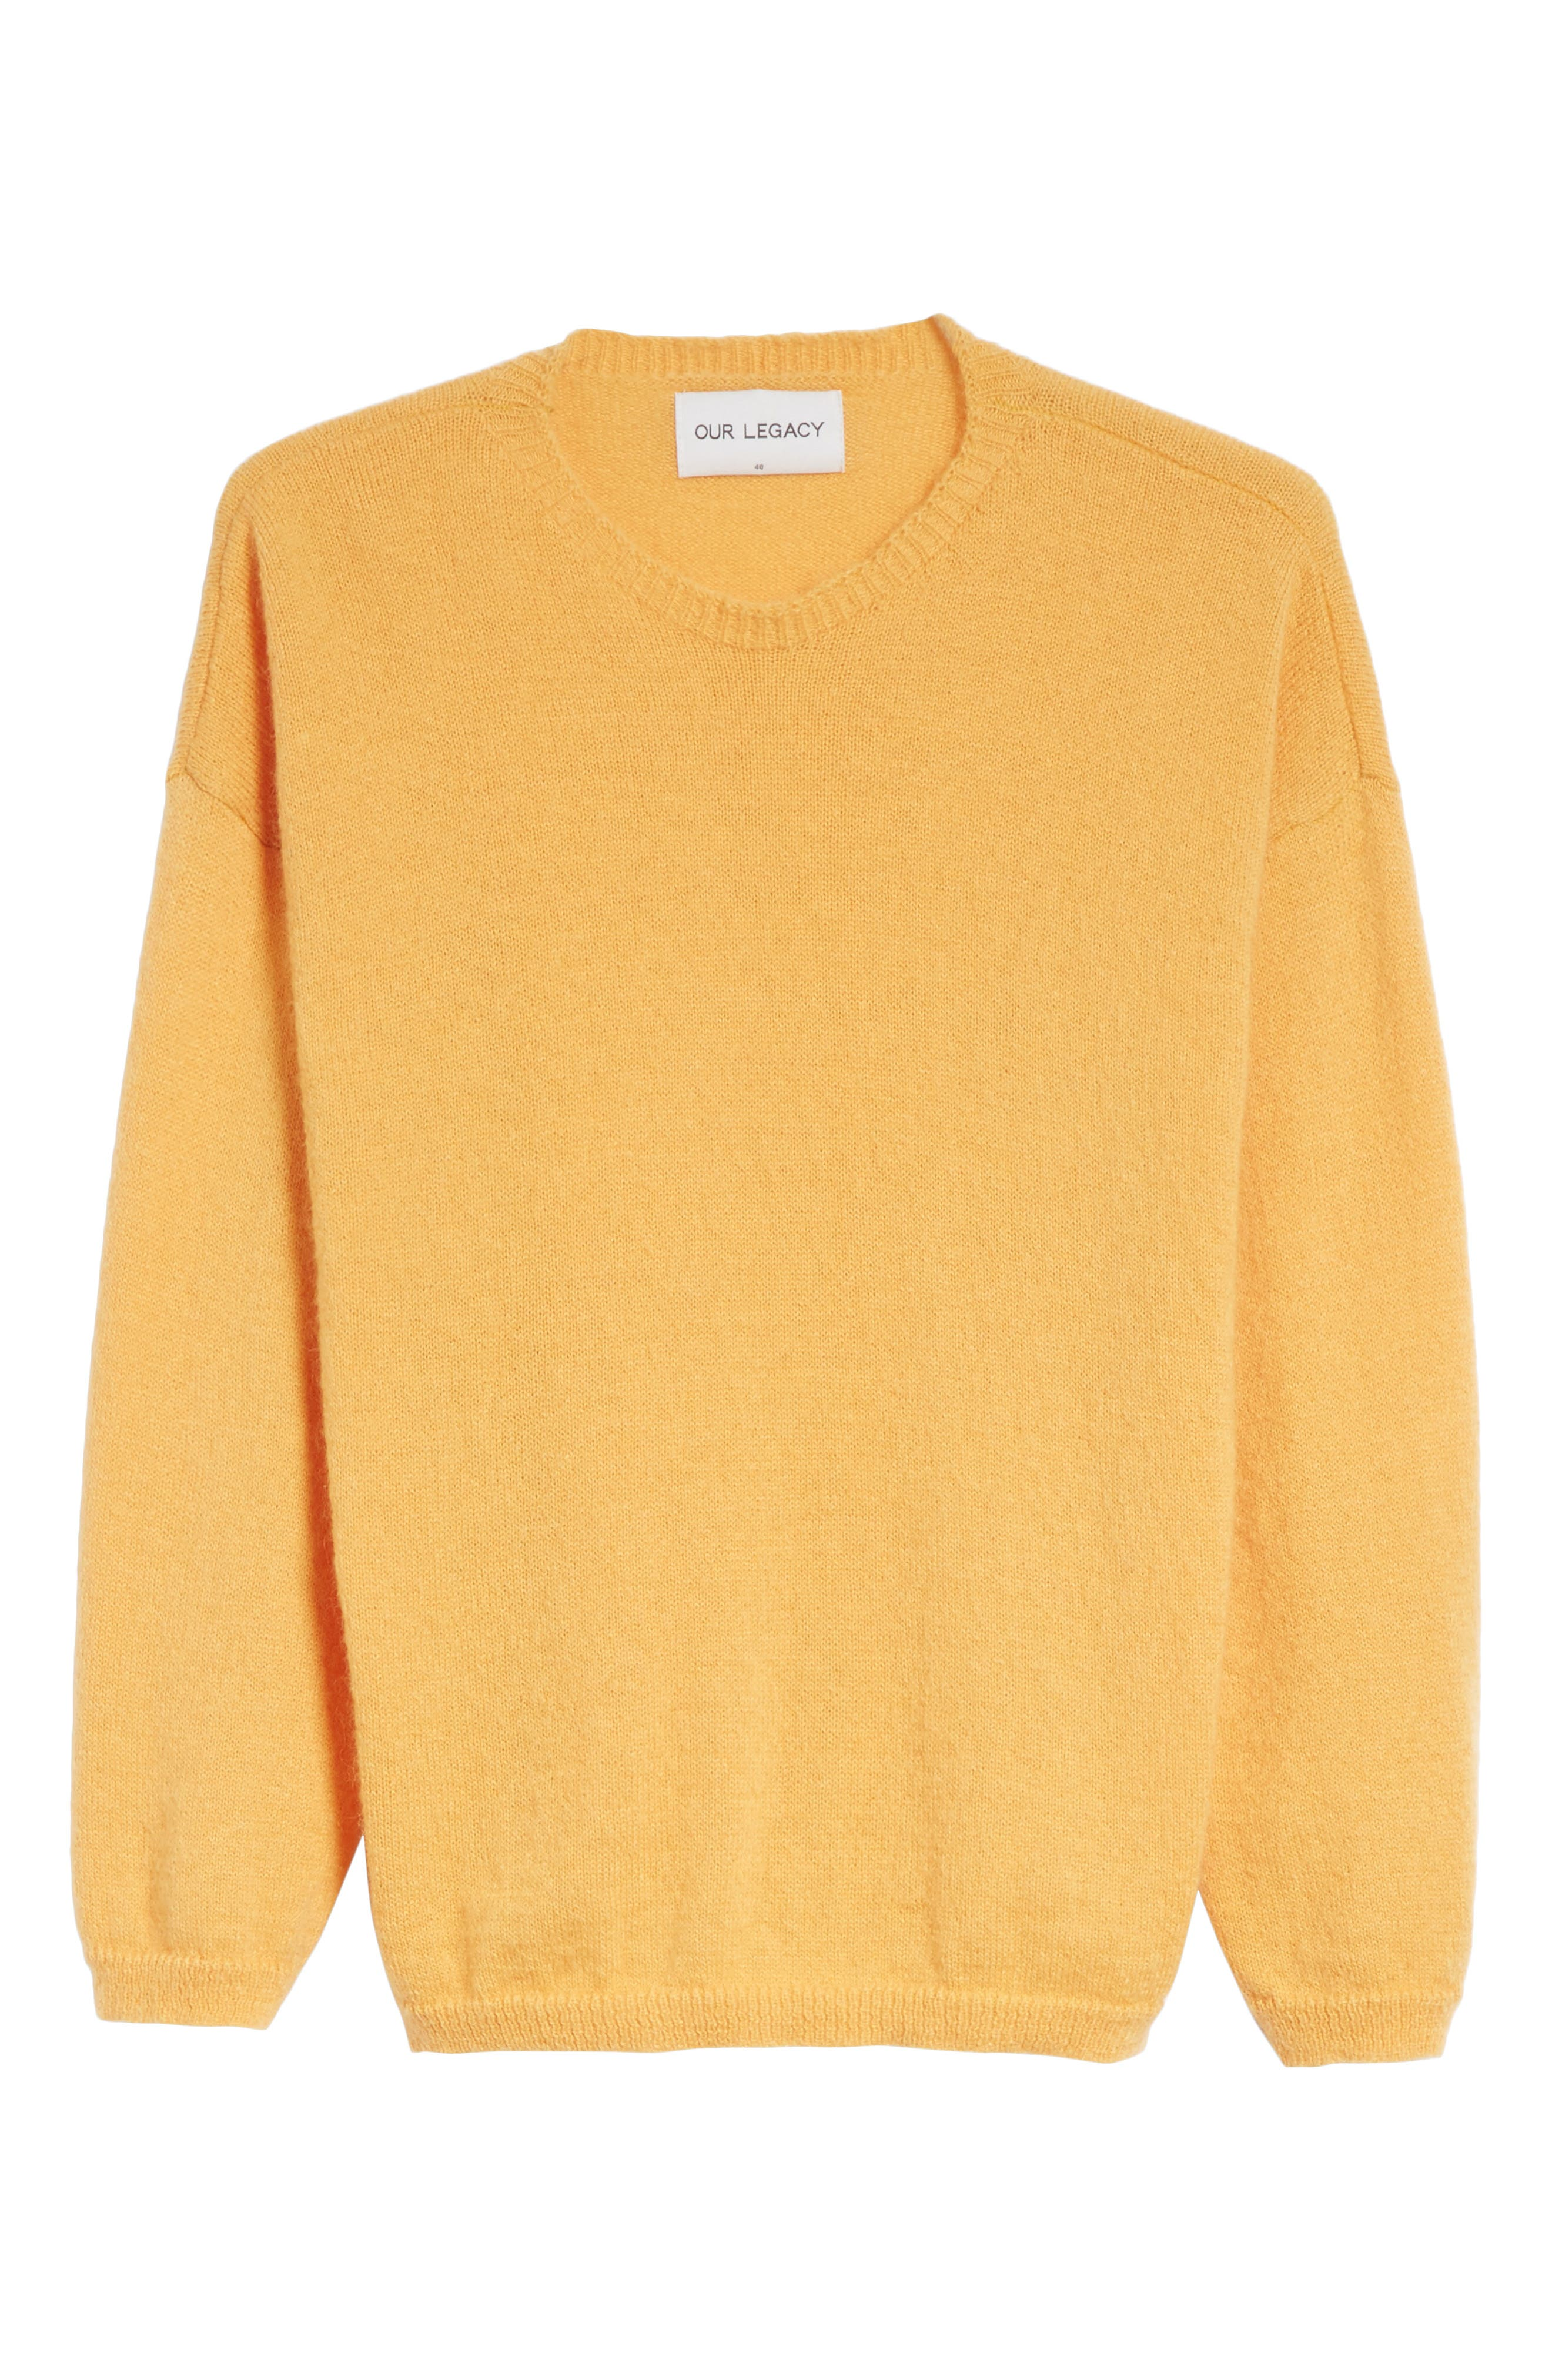 Alternate Image 6  - Our Legacy Mohair Blend Crewneck Sweater